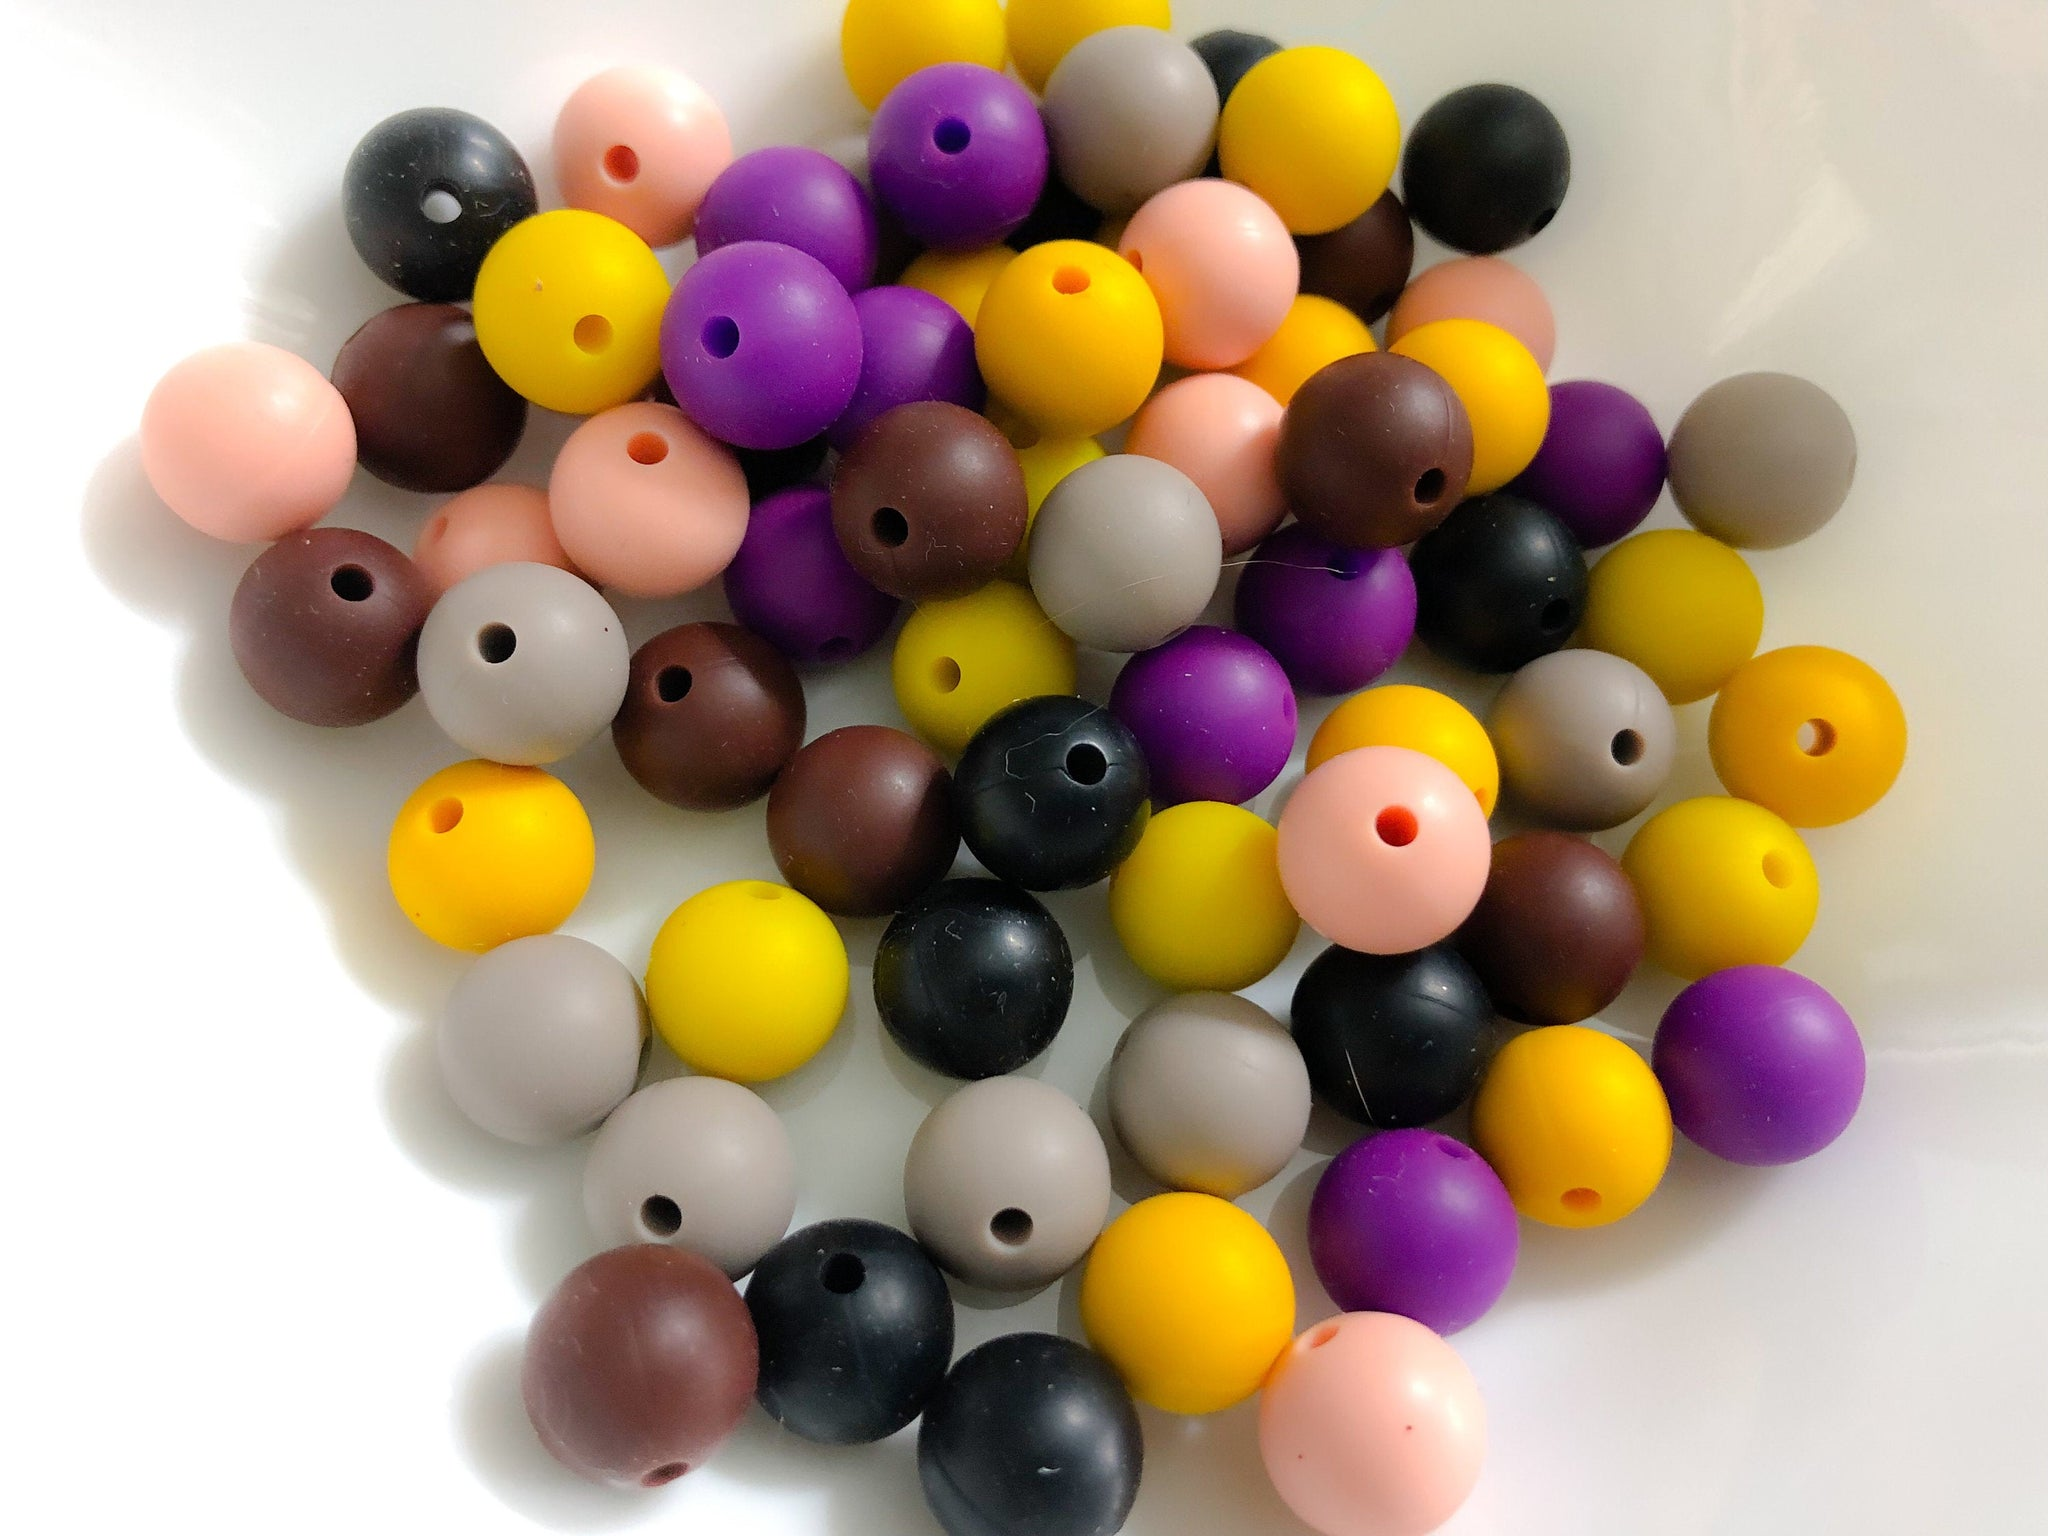 70 Bulk Silicone Teething Beads - Night Hyacinth - Plum, Black, Brown, Cafe, Mustard, Pencil, Porcelain - Bulk Silicone Beads Wholesale